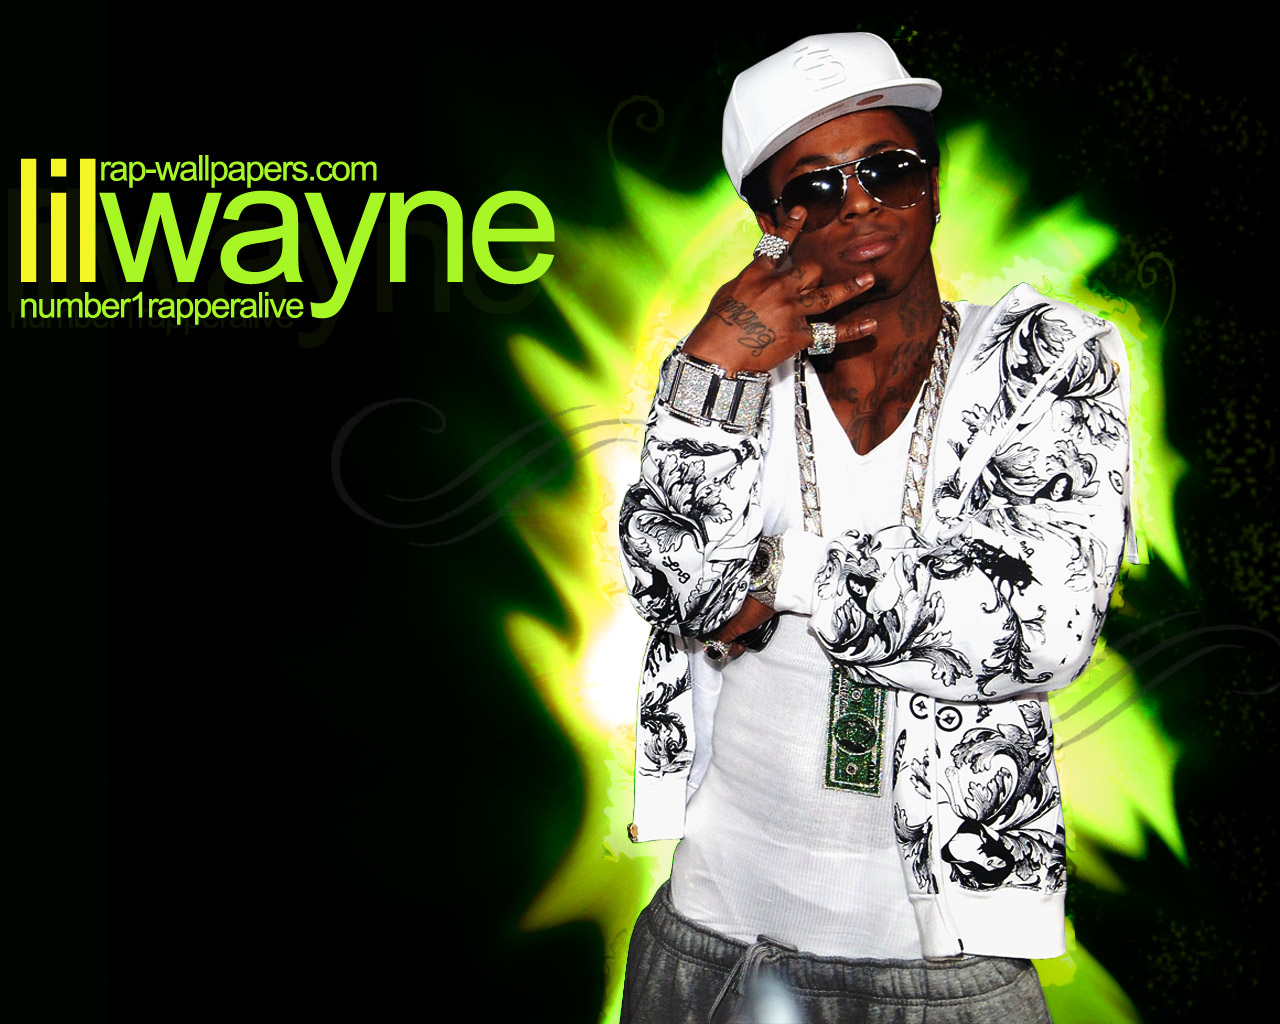 wallpaper and choose 'Save Picture As' Lil Wayne Number 1 Rapper Alive